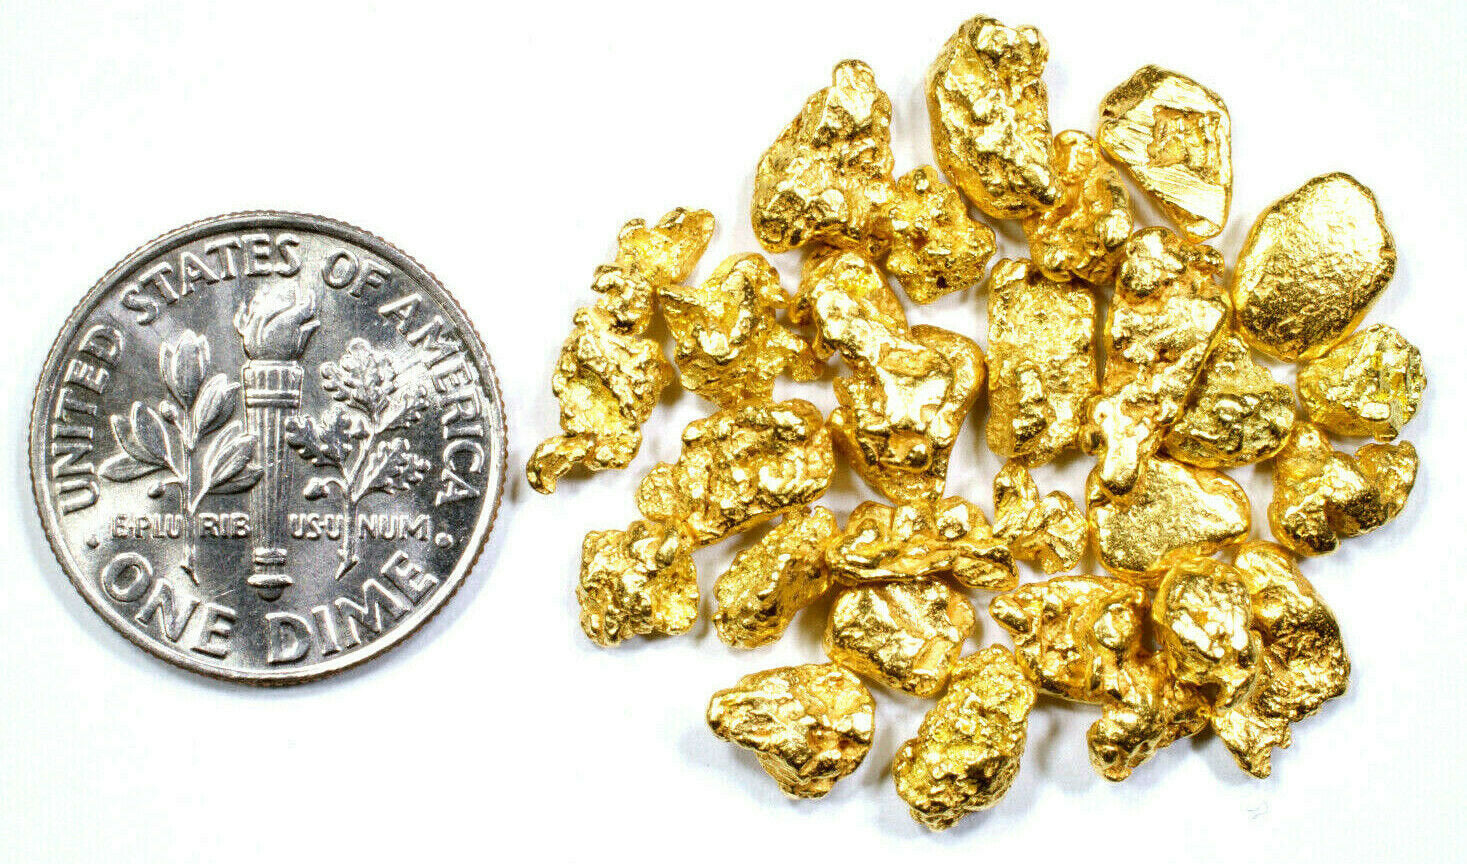 2.000 GRAMS ALASKAN YUKON BC NATURAL PURE GOLD NUGGETS #6 MESH - Liquidbullion